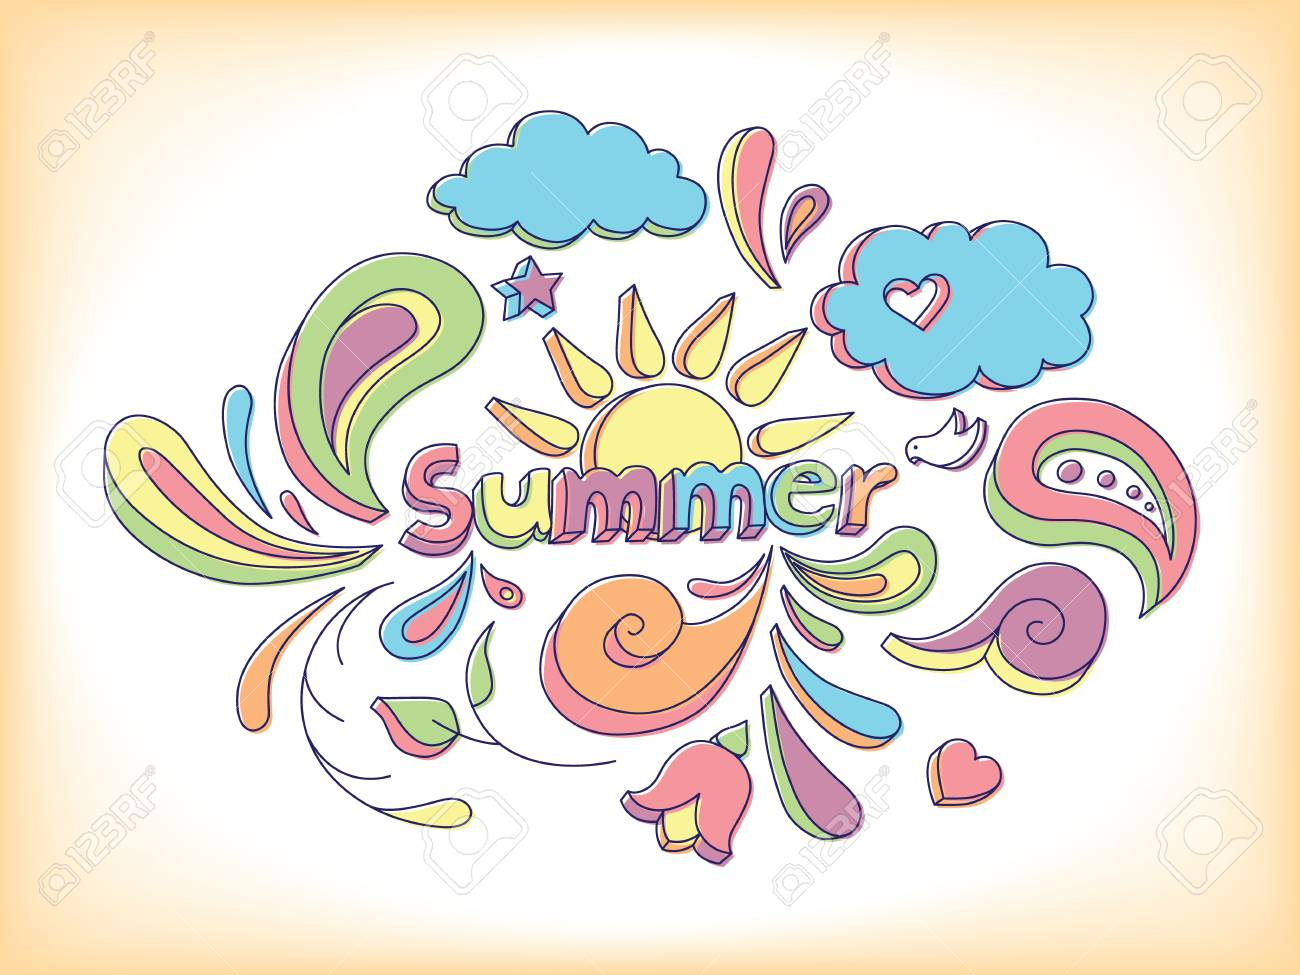 Hand drawn sketch style doodle vector illustration with summer elements. - 20870452